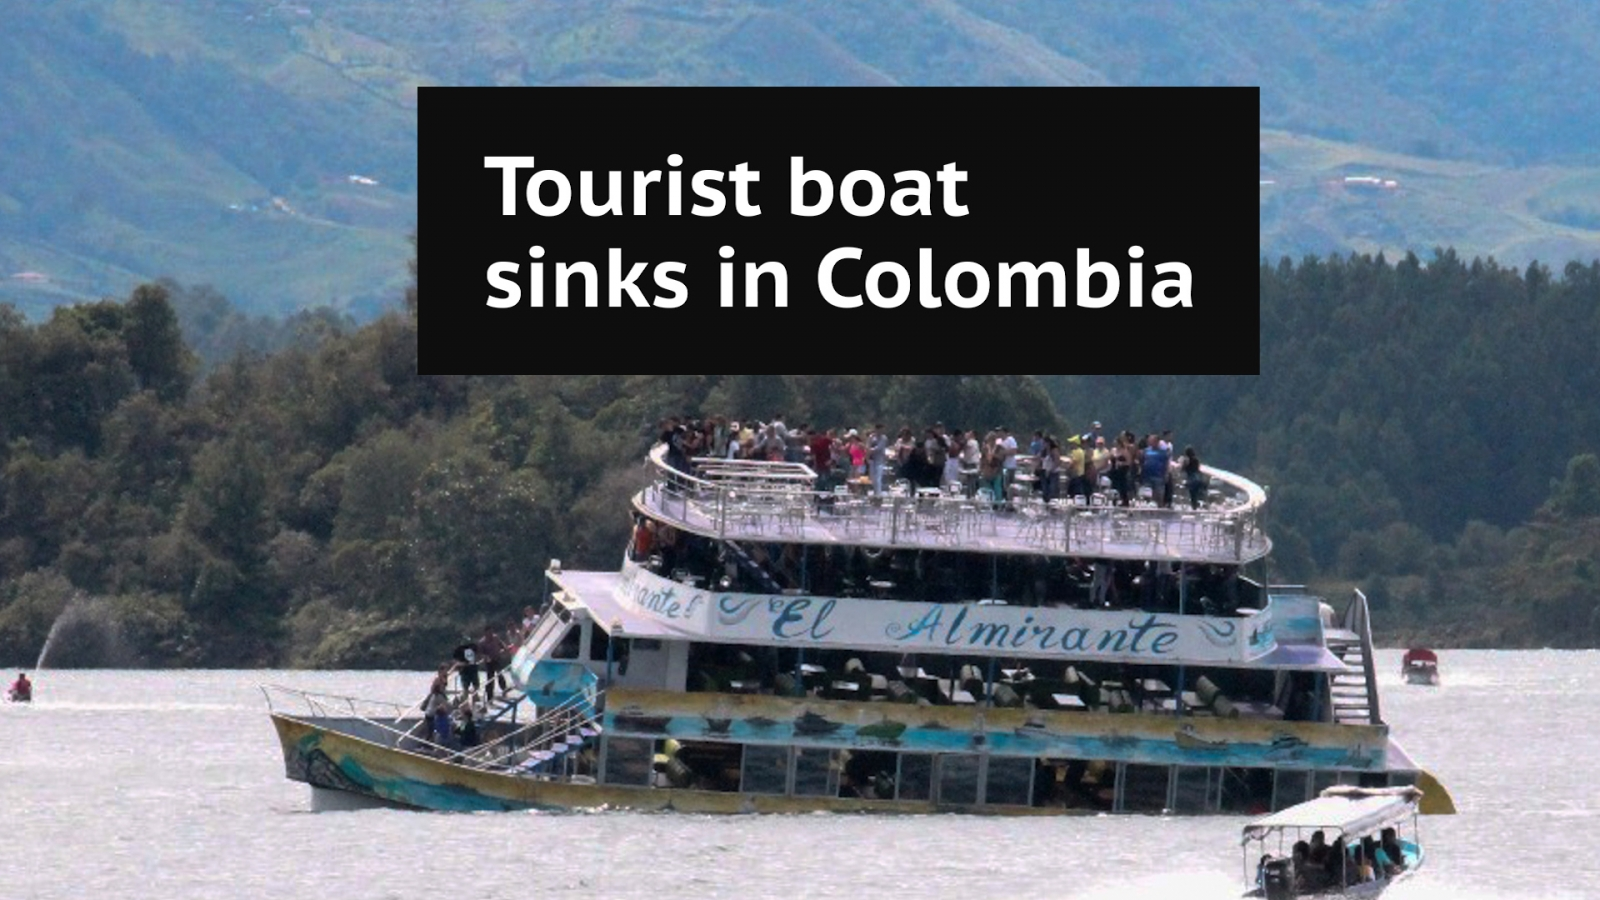 Tourist boat sinks in Colombia